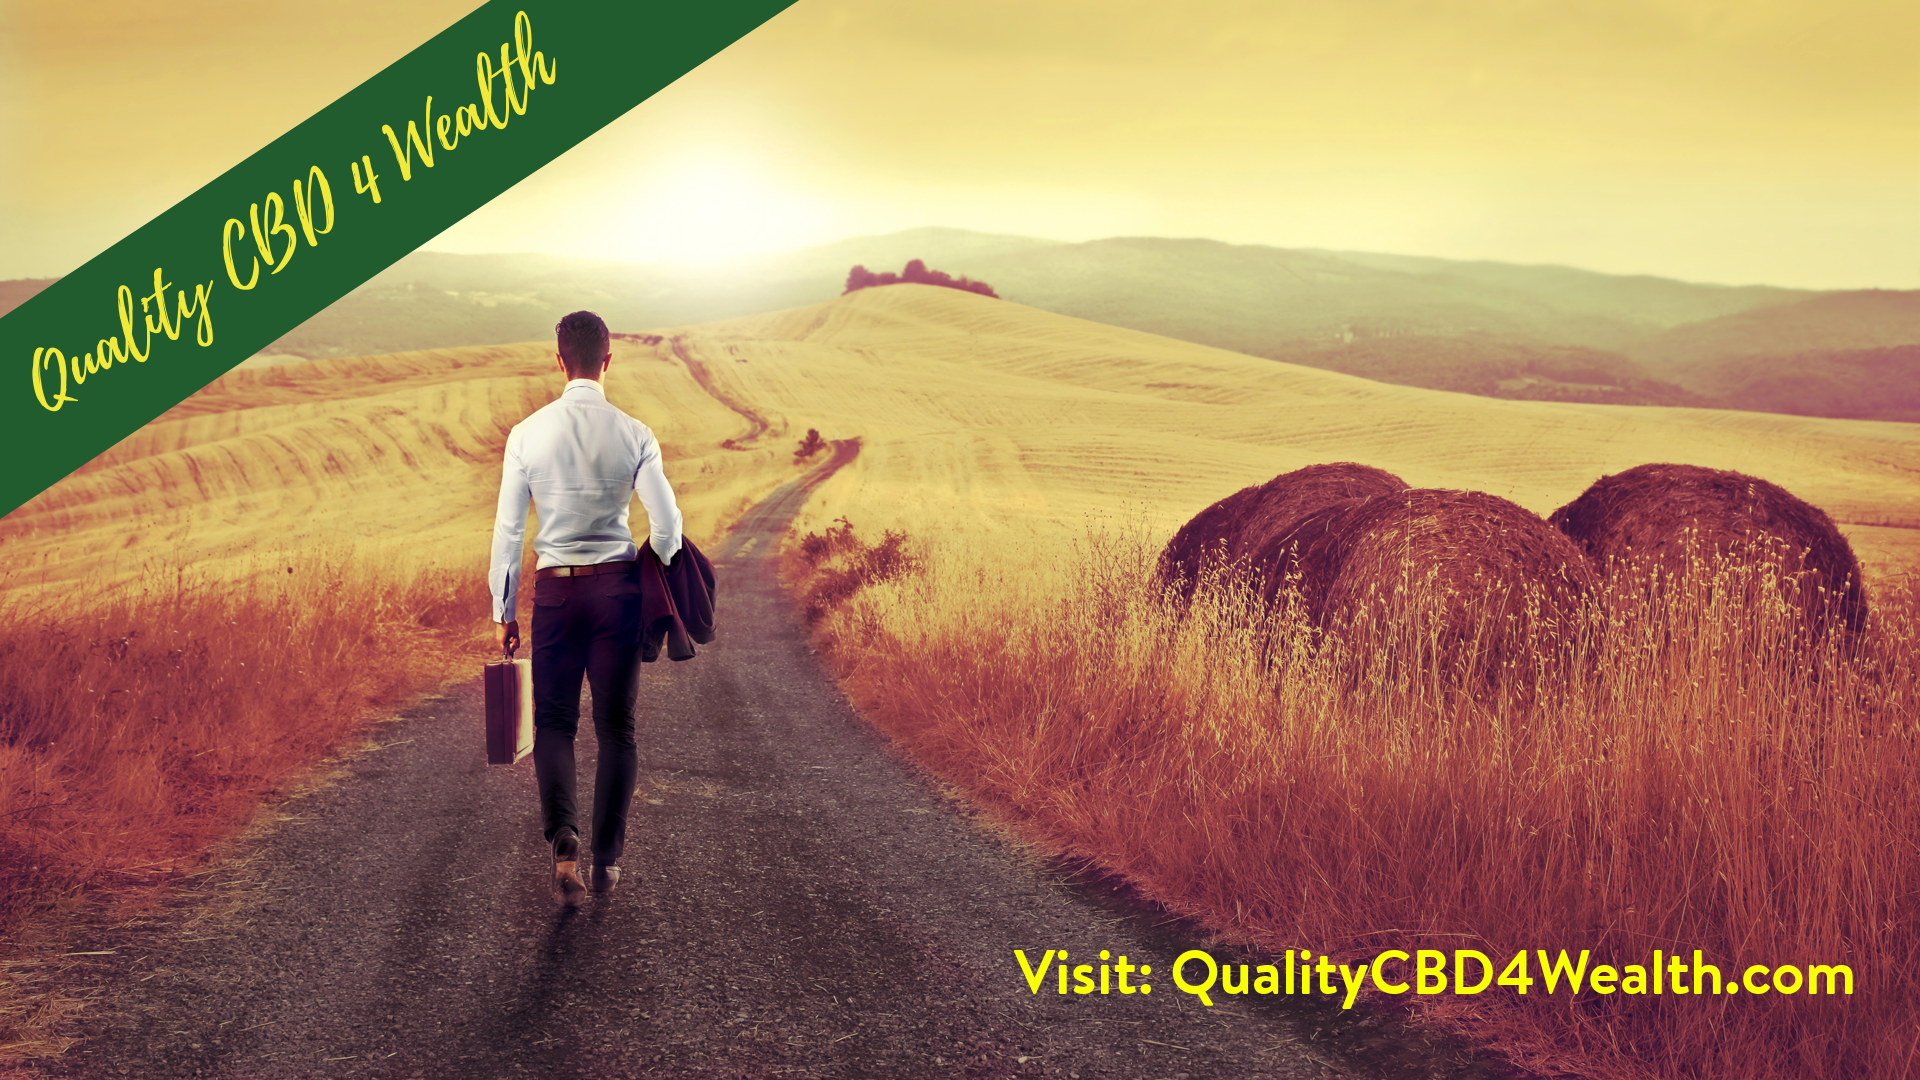 Quality-CBD4-Wealth-1920x1080-layout1433-1eegiin